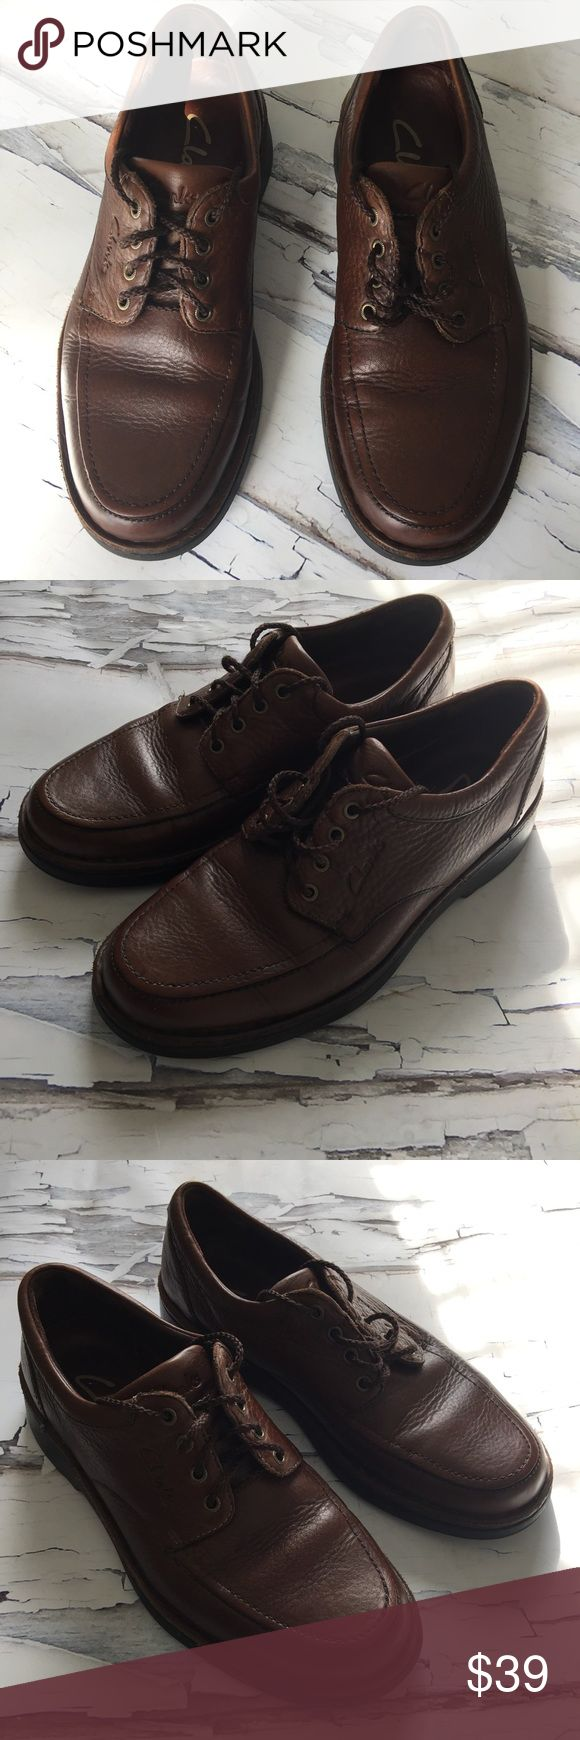 Men's CLARKS Brown Leather Lace Up Oxfords EUC Genuine leather. Medium width Clarks Shoes Oxfords & Derbys